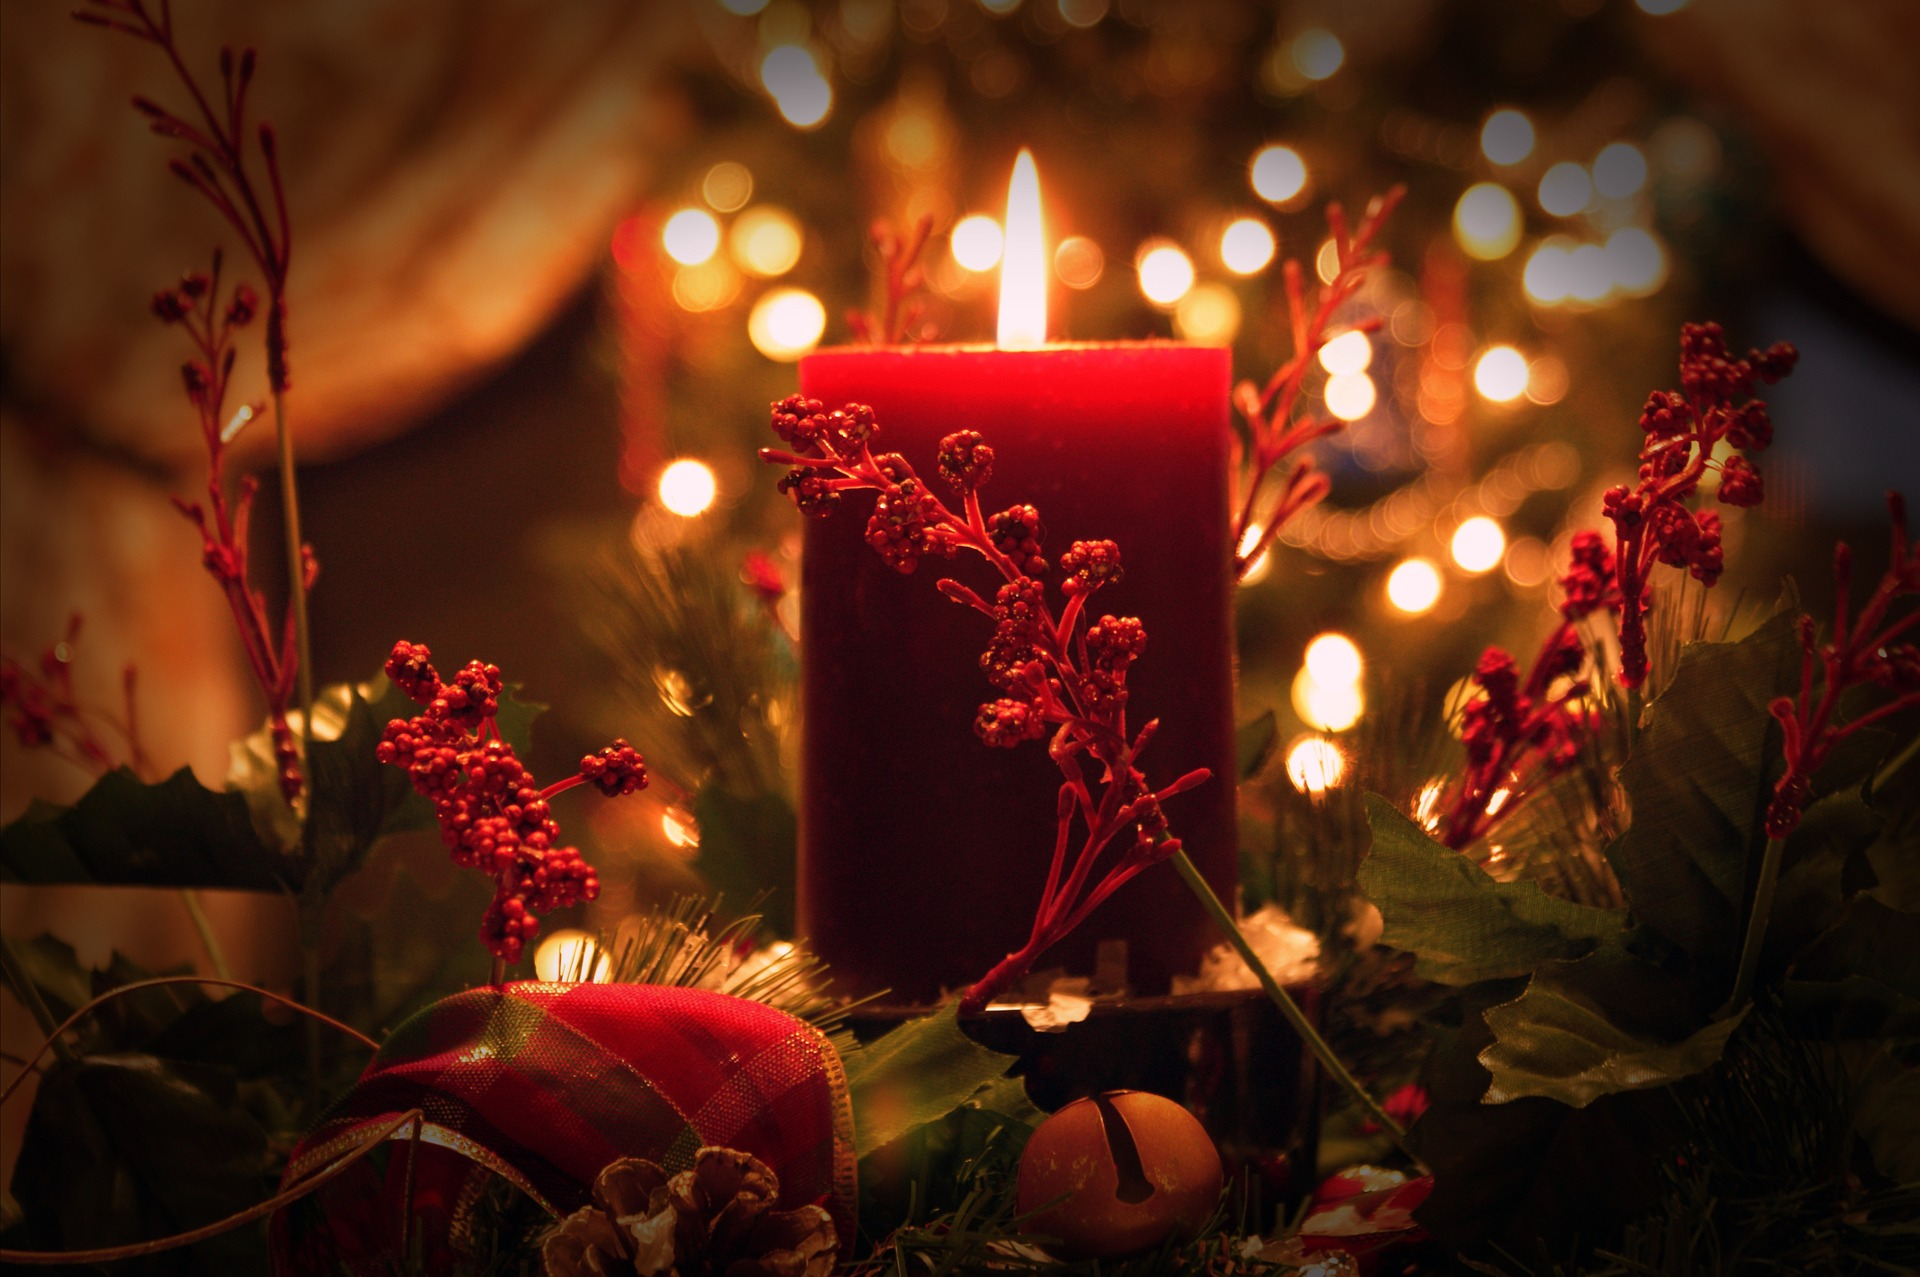 Caregiver Support: Handling Stress and Grief During the Holidays